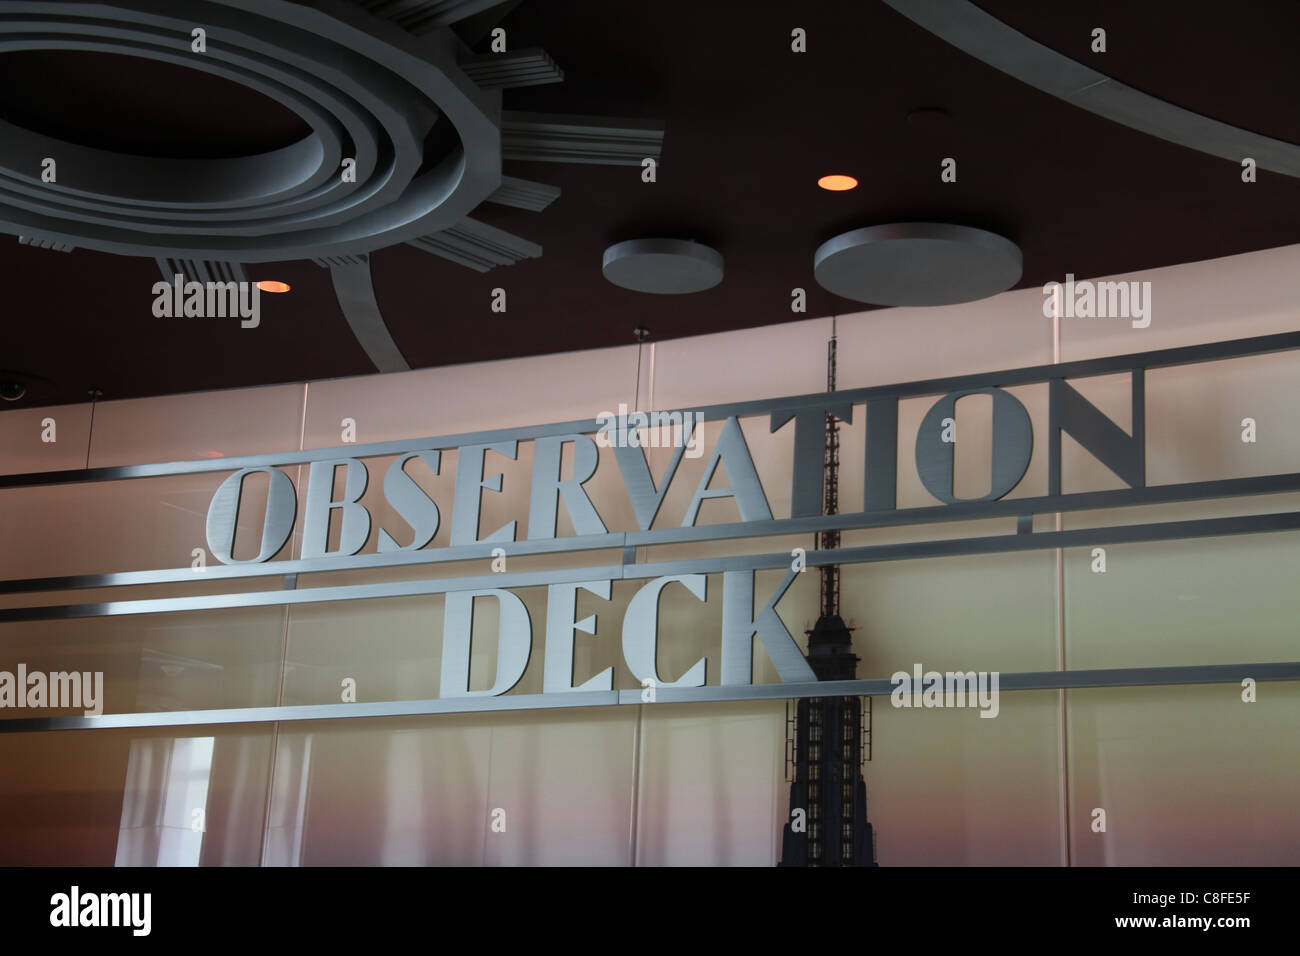 Observation Deck Sign inside the Empire State Building - Stock Image